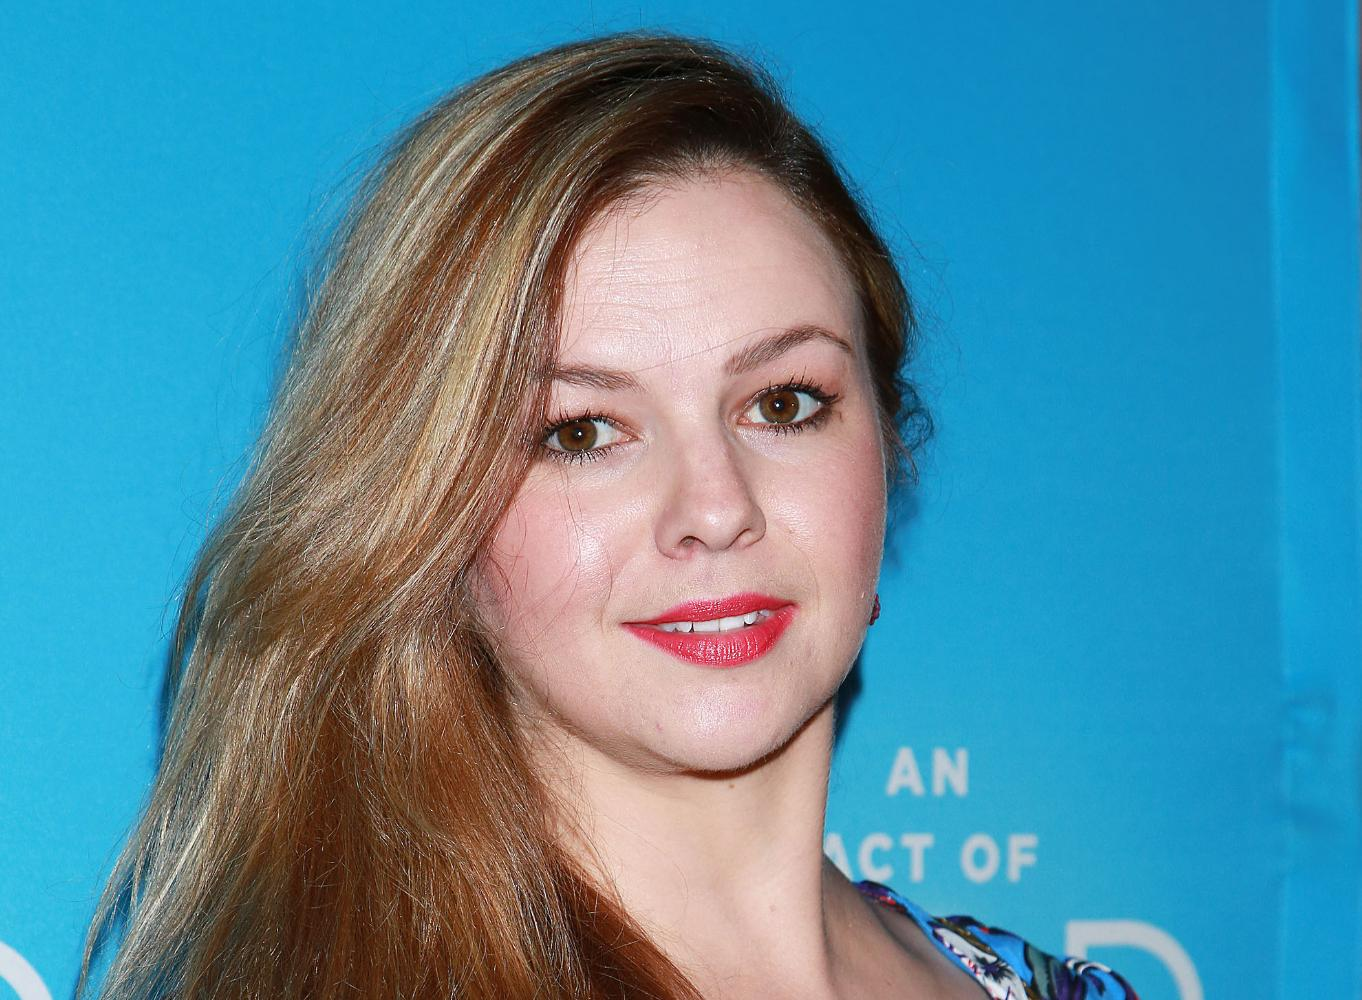 Amber Tamblyn Comes Forward With Sexual Abuse Story Amid Outrage Over Lewd Donald Trump Comments